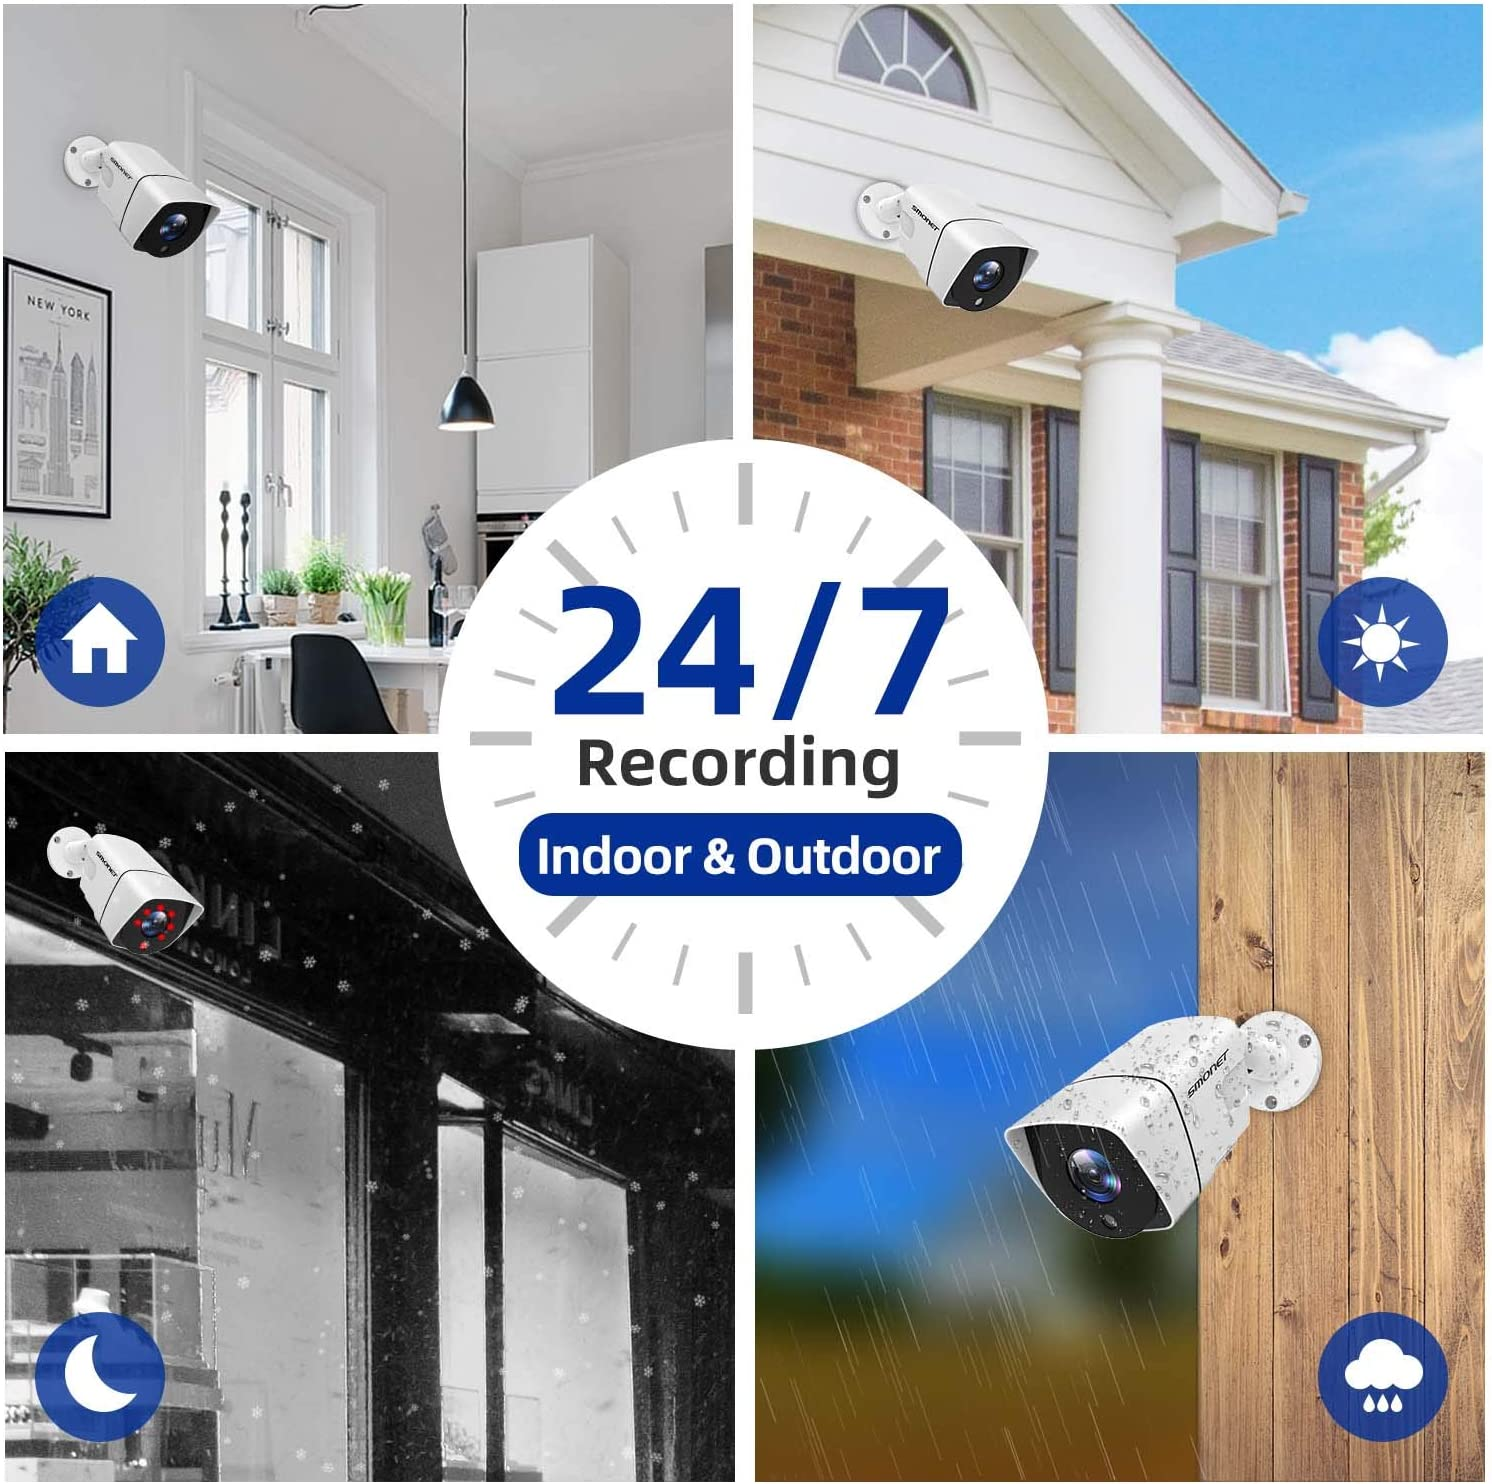 ,4pcs Outdoor Indoor Wired Security Cameras FHD Home Security Camera Systems,SMONET 8 Channel 5-in-1 5MP Video Security System P2P Surveillance Systems,CCTV DVR Kits with Night Vision 1TB Hard Drive